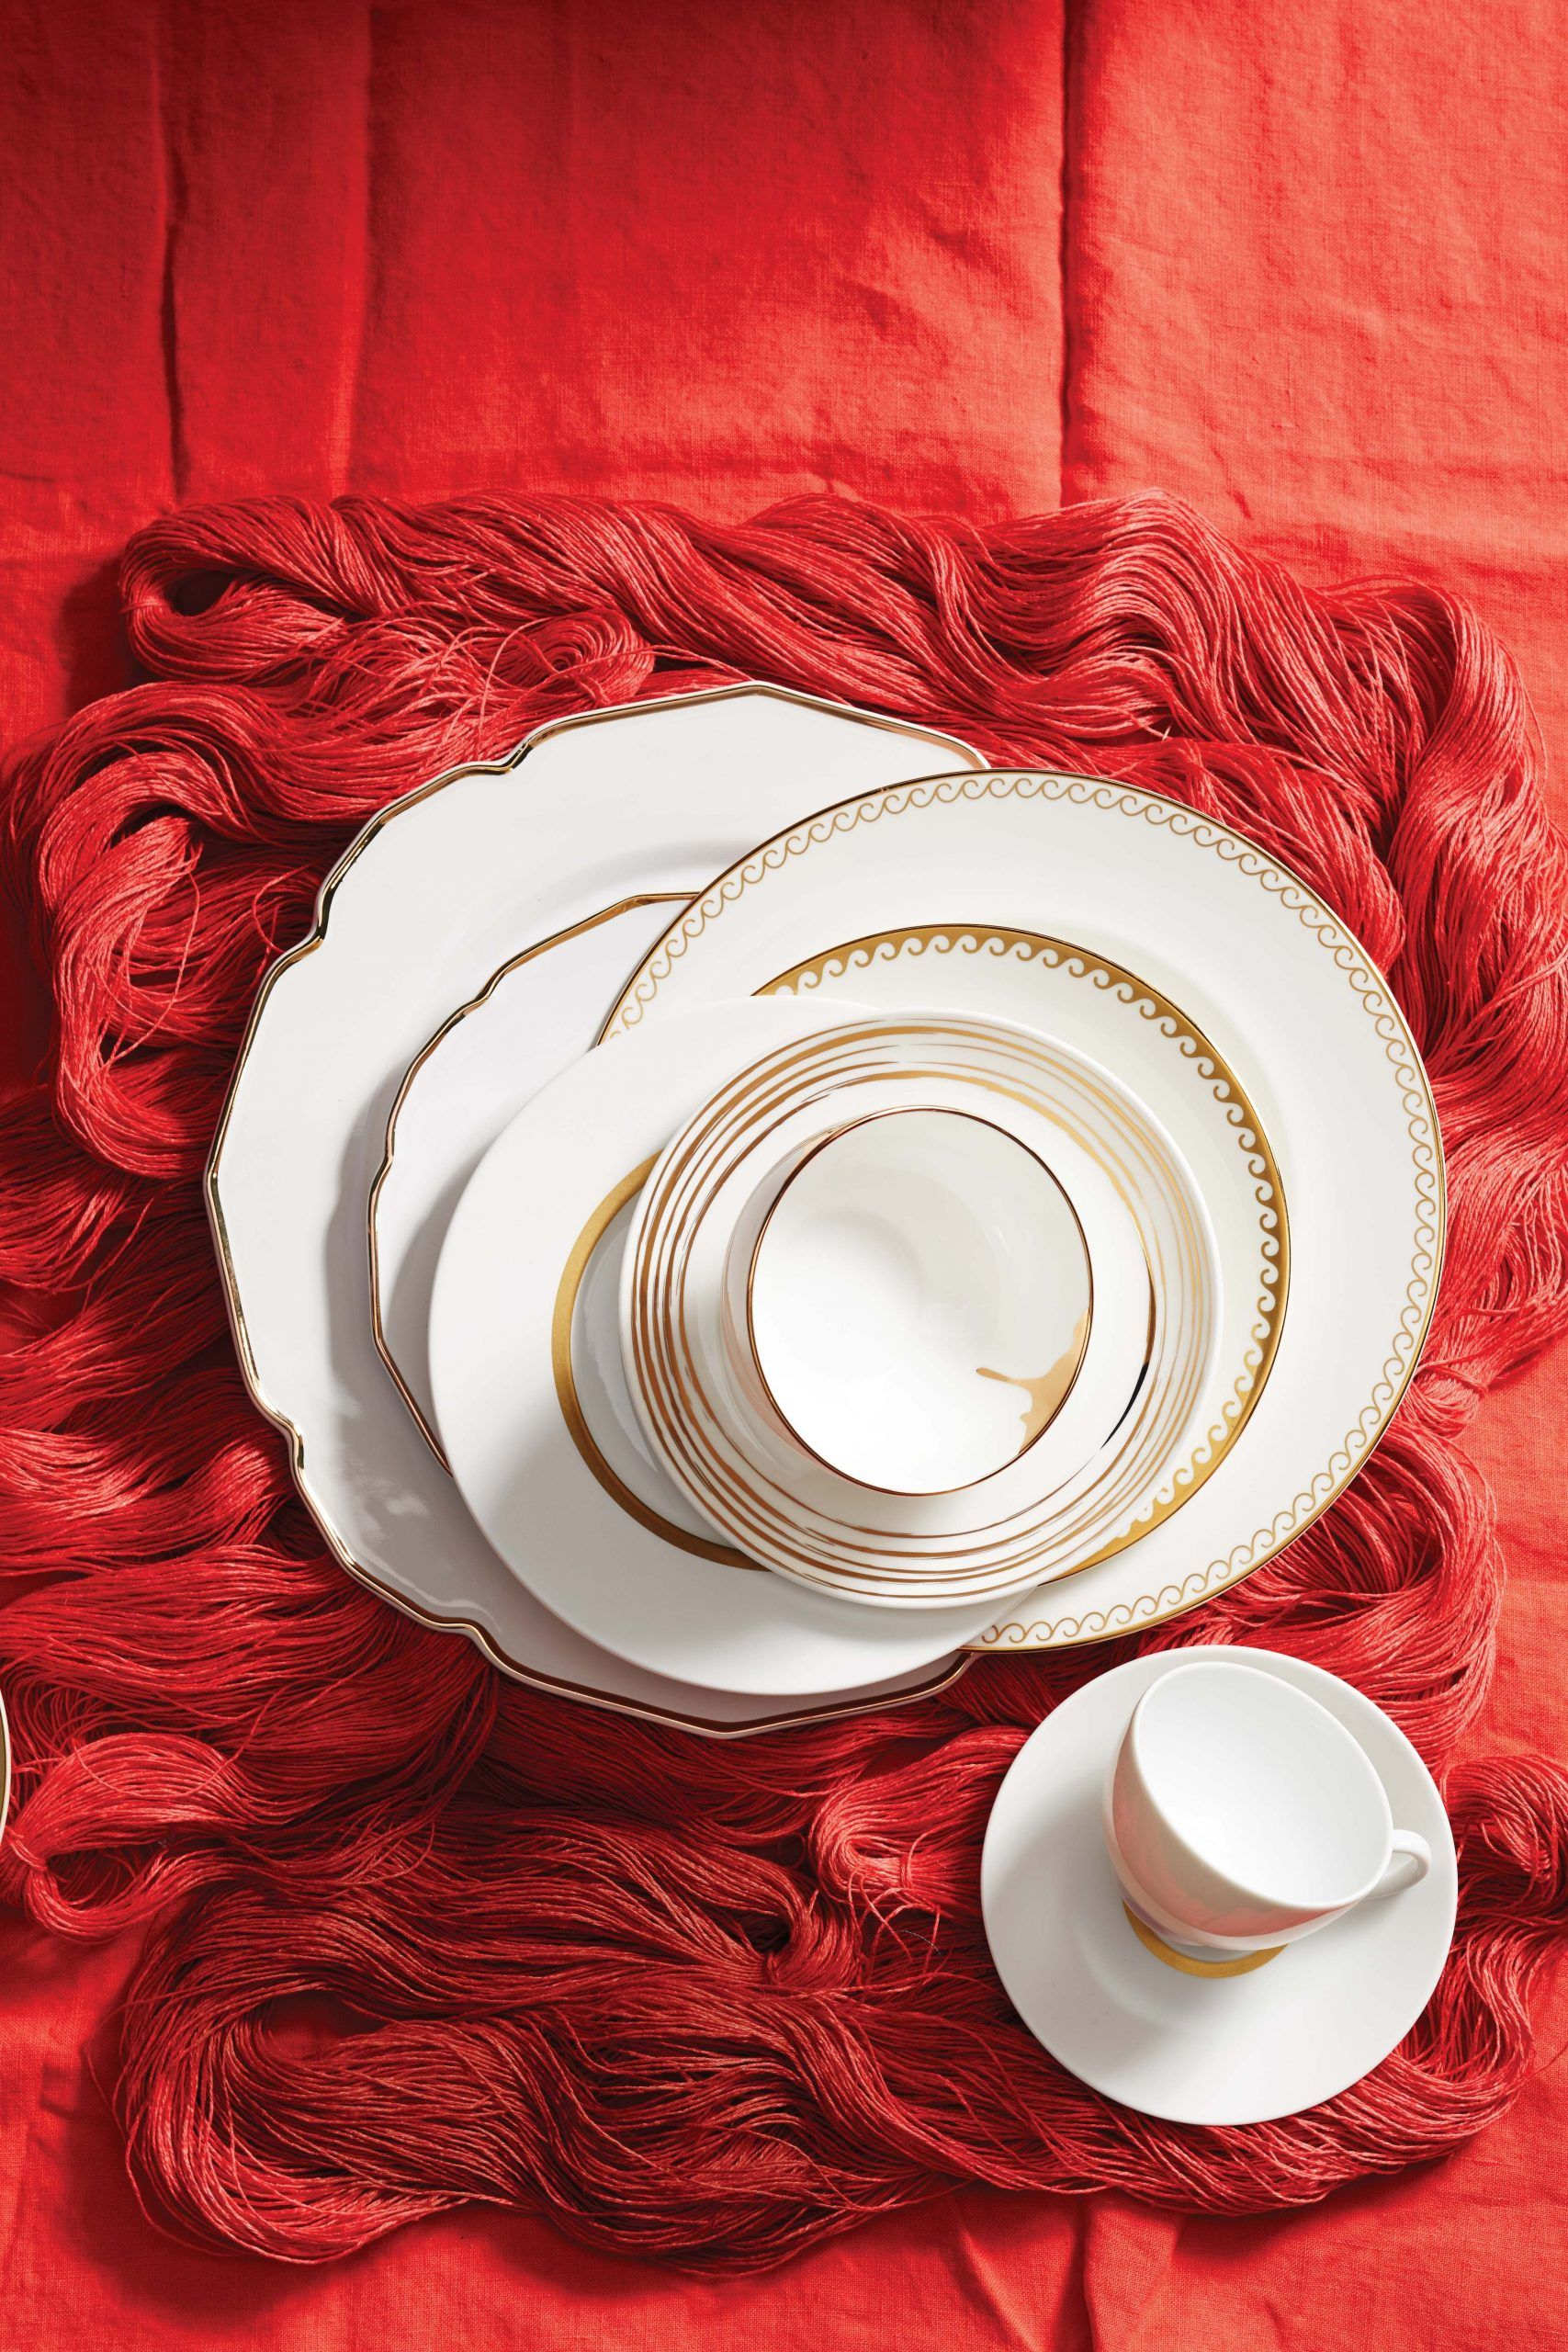 Ivory Gifts for Your 14th Wedding Anniversary14th